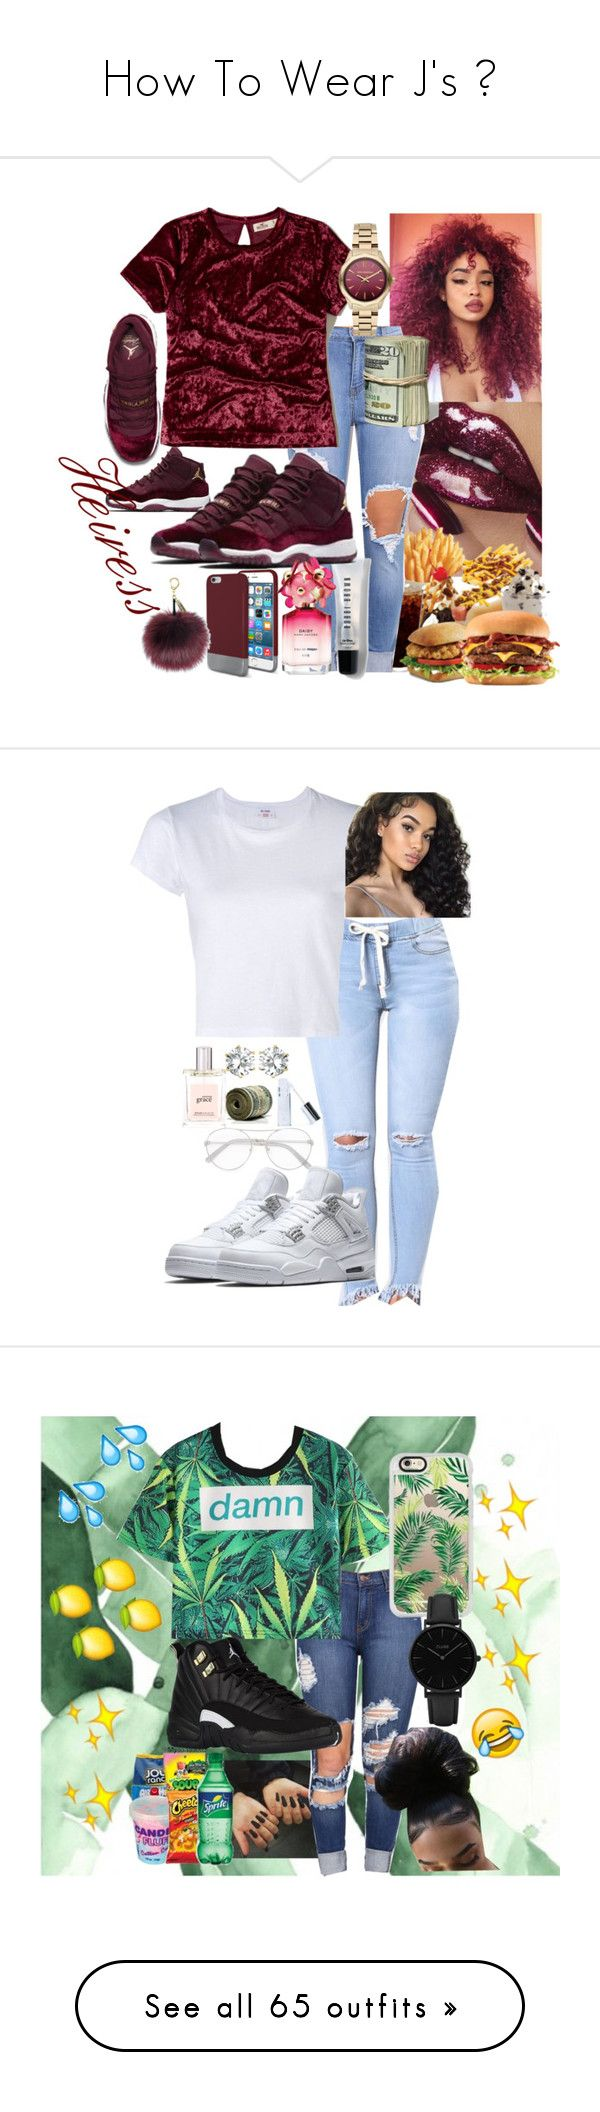 """How To Wear J's ✨"" by bxbysnoop ❤ liked on Polyvore featuring NIKE, Original Penguin, Bobbi Brown Cosmetics, Hollister Co., Karl Lagerfeld, Marc Jacobs, Chloé, West Coast Jewelry, RE/DONE and philosophy"